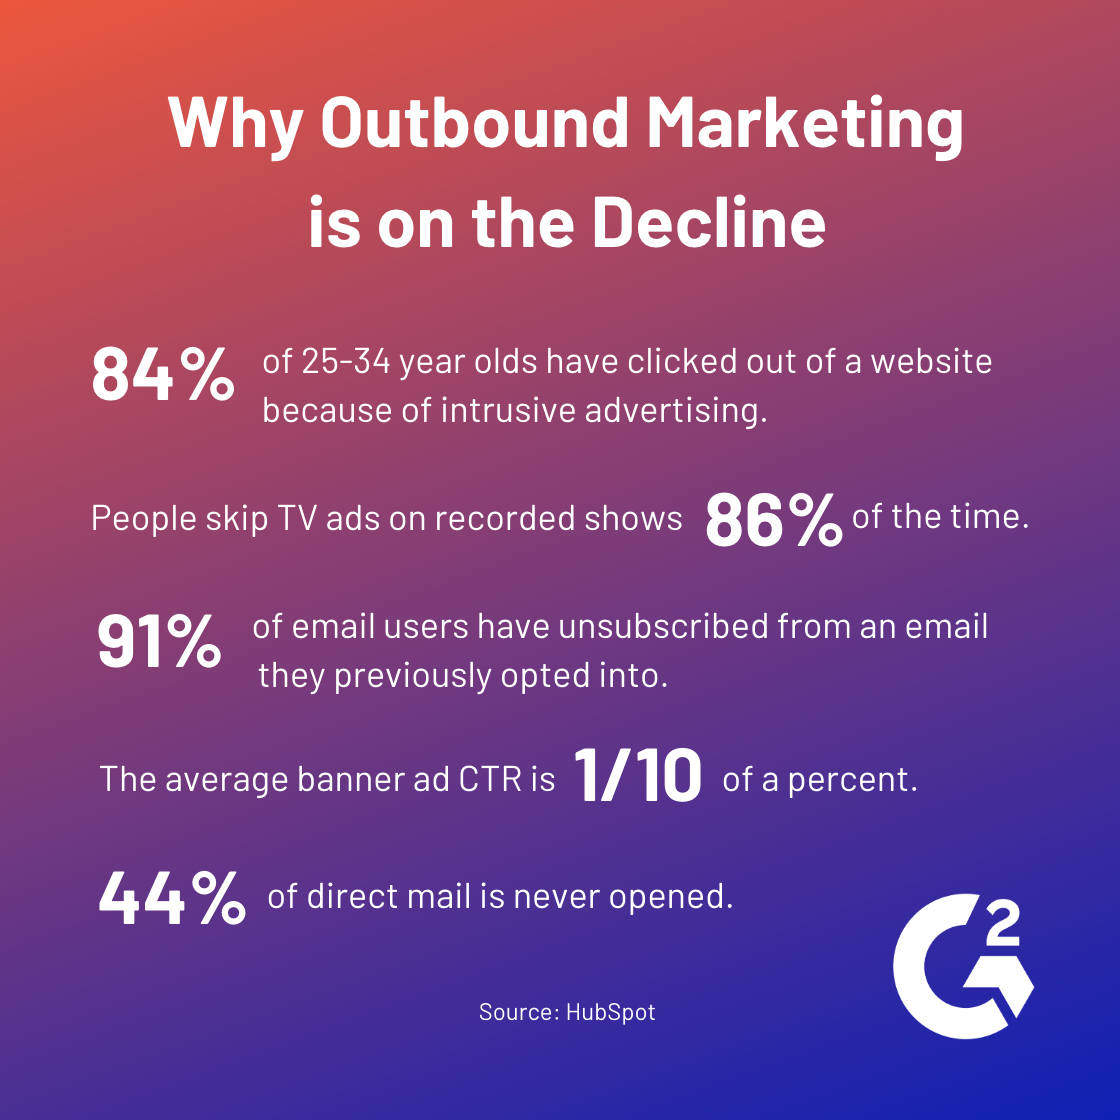 outbound marketing is on the decline